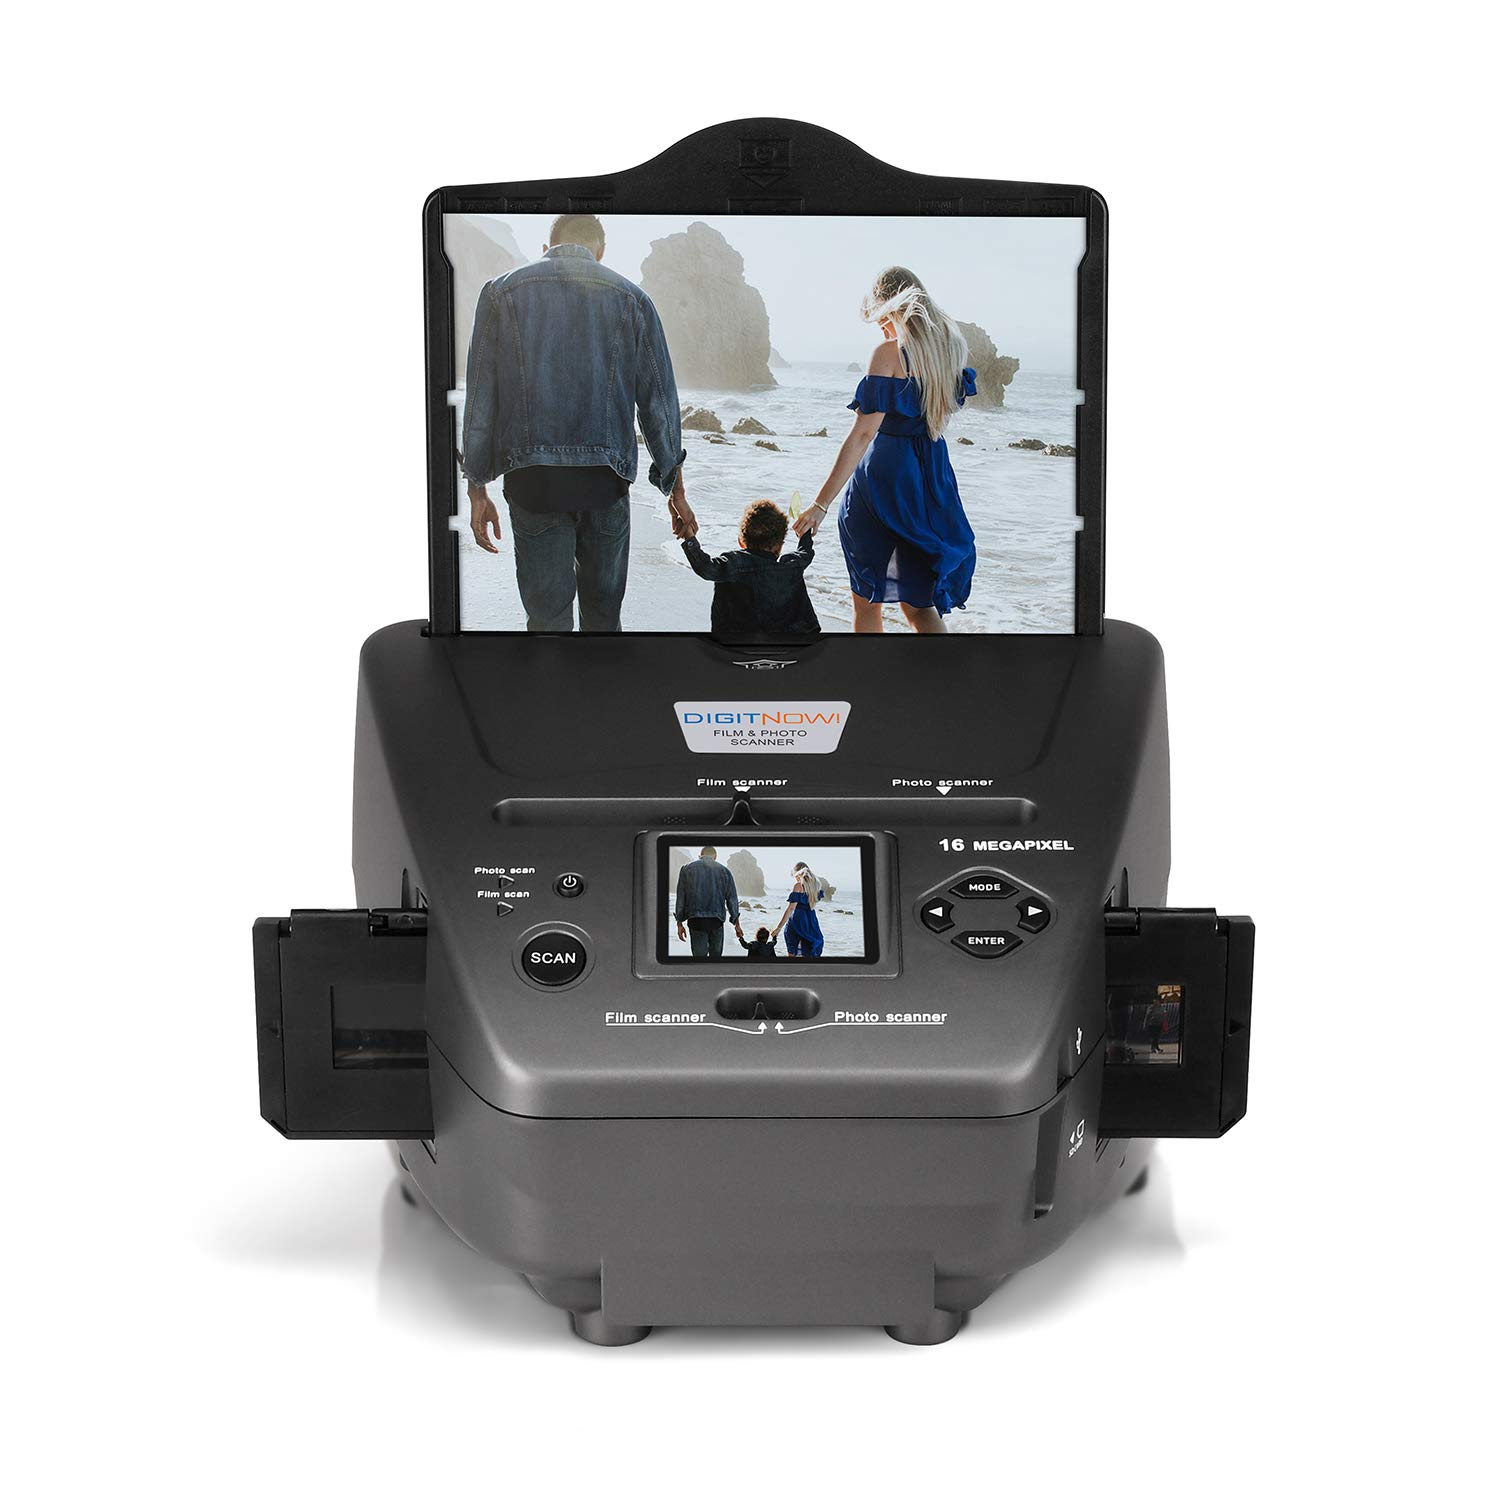 DIGITNOW All-in-One High Resolution 16MP Film Scanner, with 2.4'' LCD Screen Converts 35mm/135slides&Negatives Film Scanner Photo, Name Card